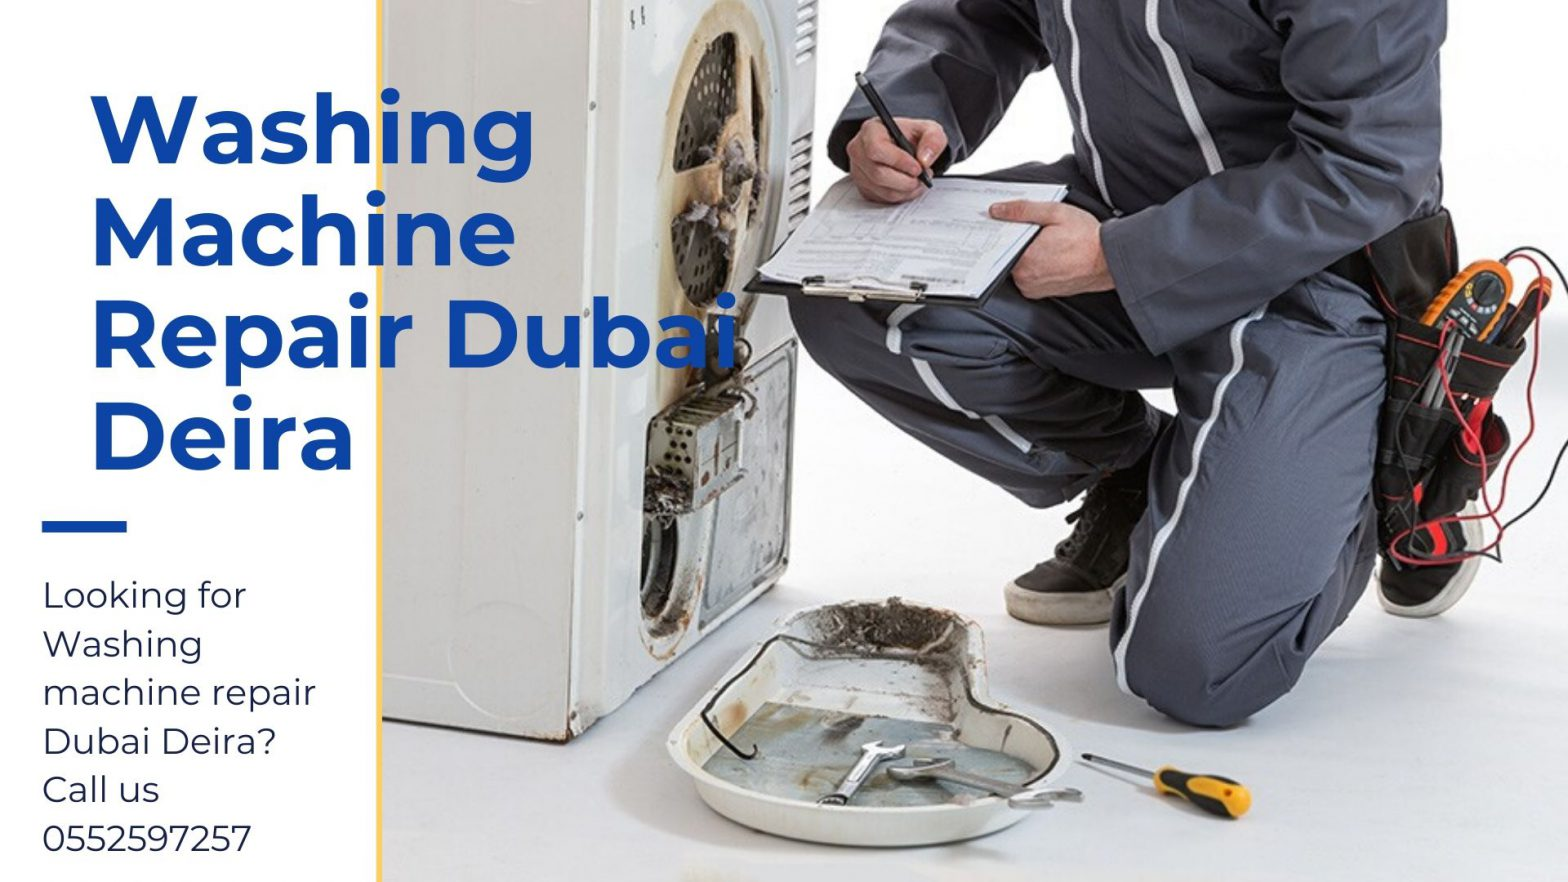 Washing machine repair in Dubai Deira